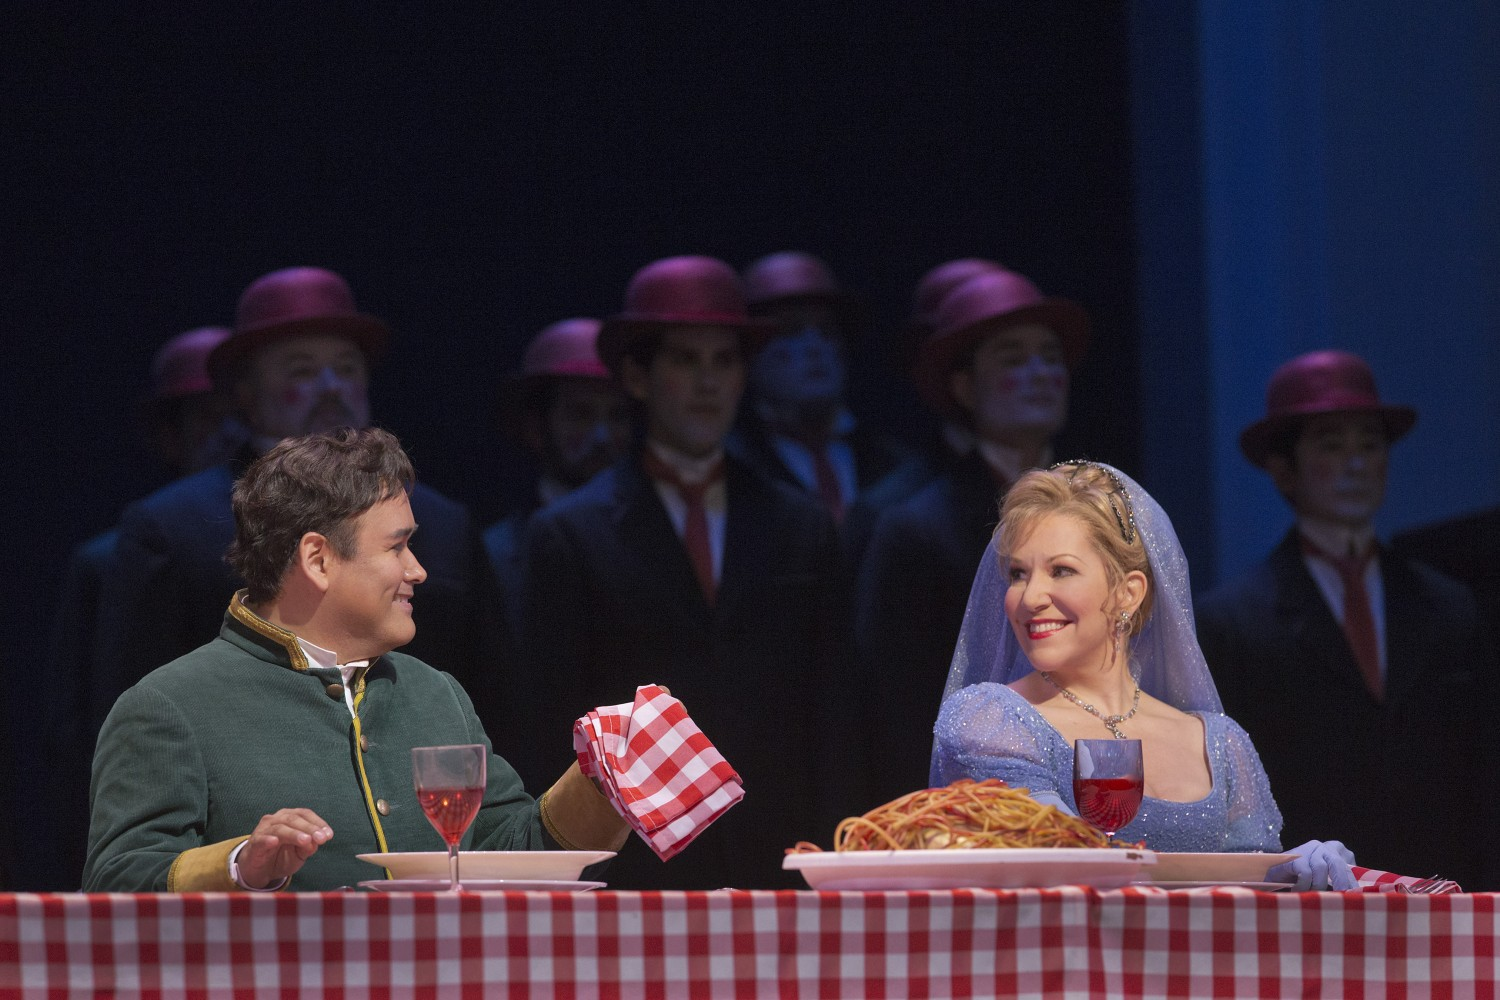 Prince Ramiro (played by Javier Camarena) and Cenerentola (played by Joyce DiDonato) during a 2014 performance of Rossini's